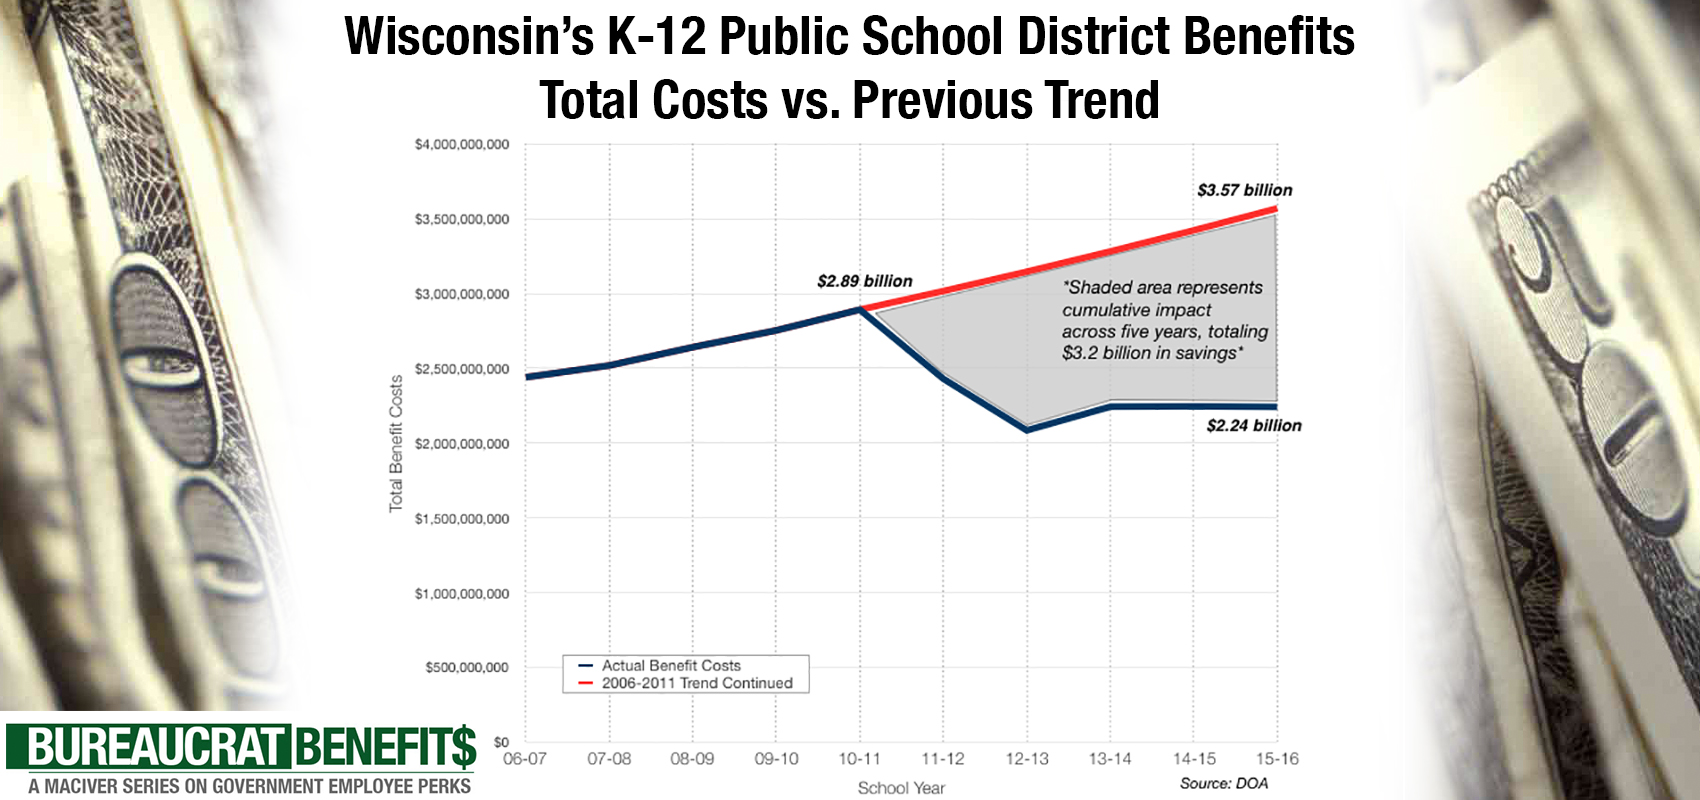 Since Act 10, School Districts Have Saved $3 2 Billion in